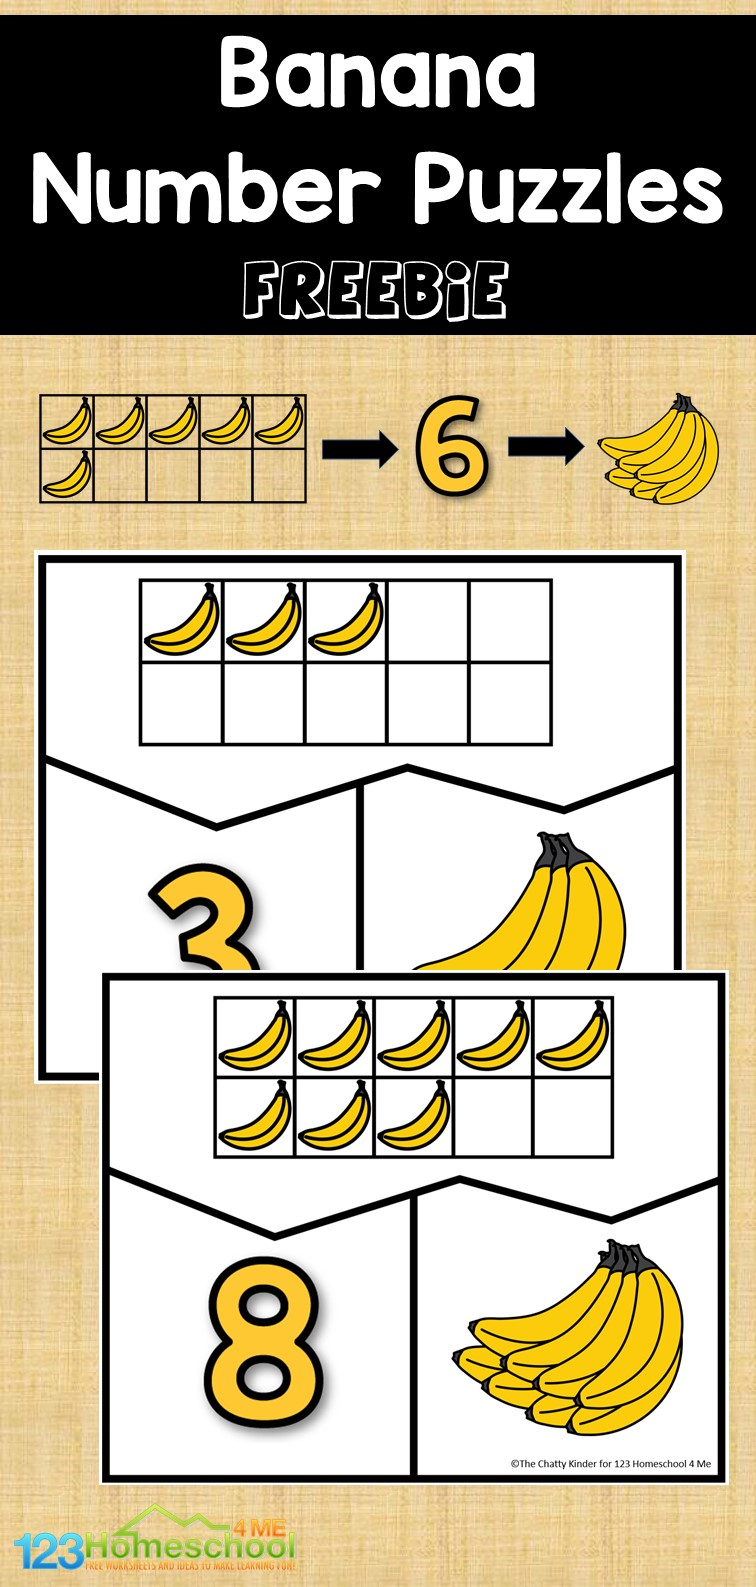 Looking for a fun activity to help your learners with number sense? Check out these fun banana themed number puzzles. Learners can practice their counting and subitizing skills while having some banana fun. Simply print number sense puzzles and you are ready to play and learn.